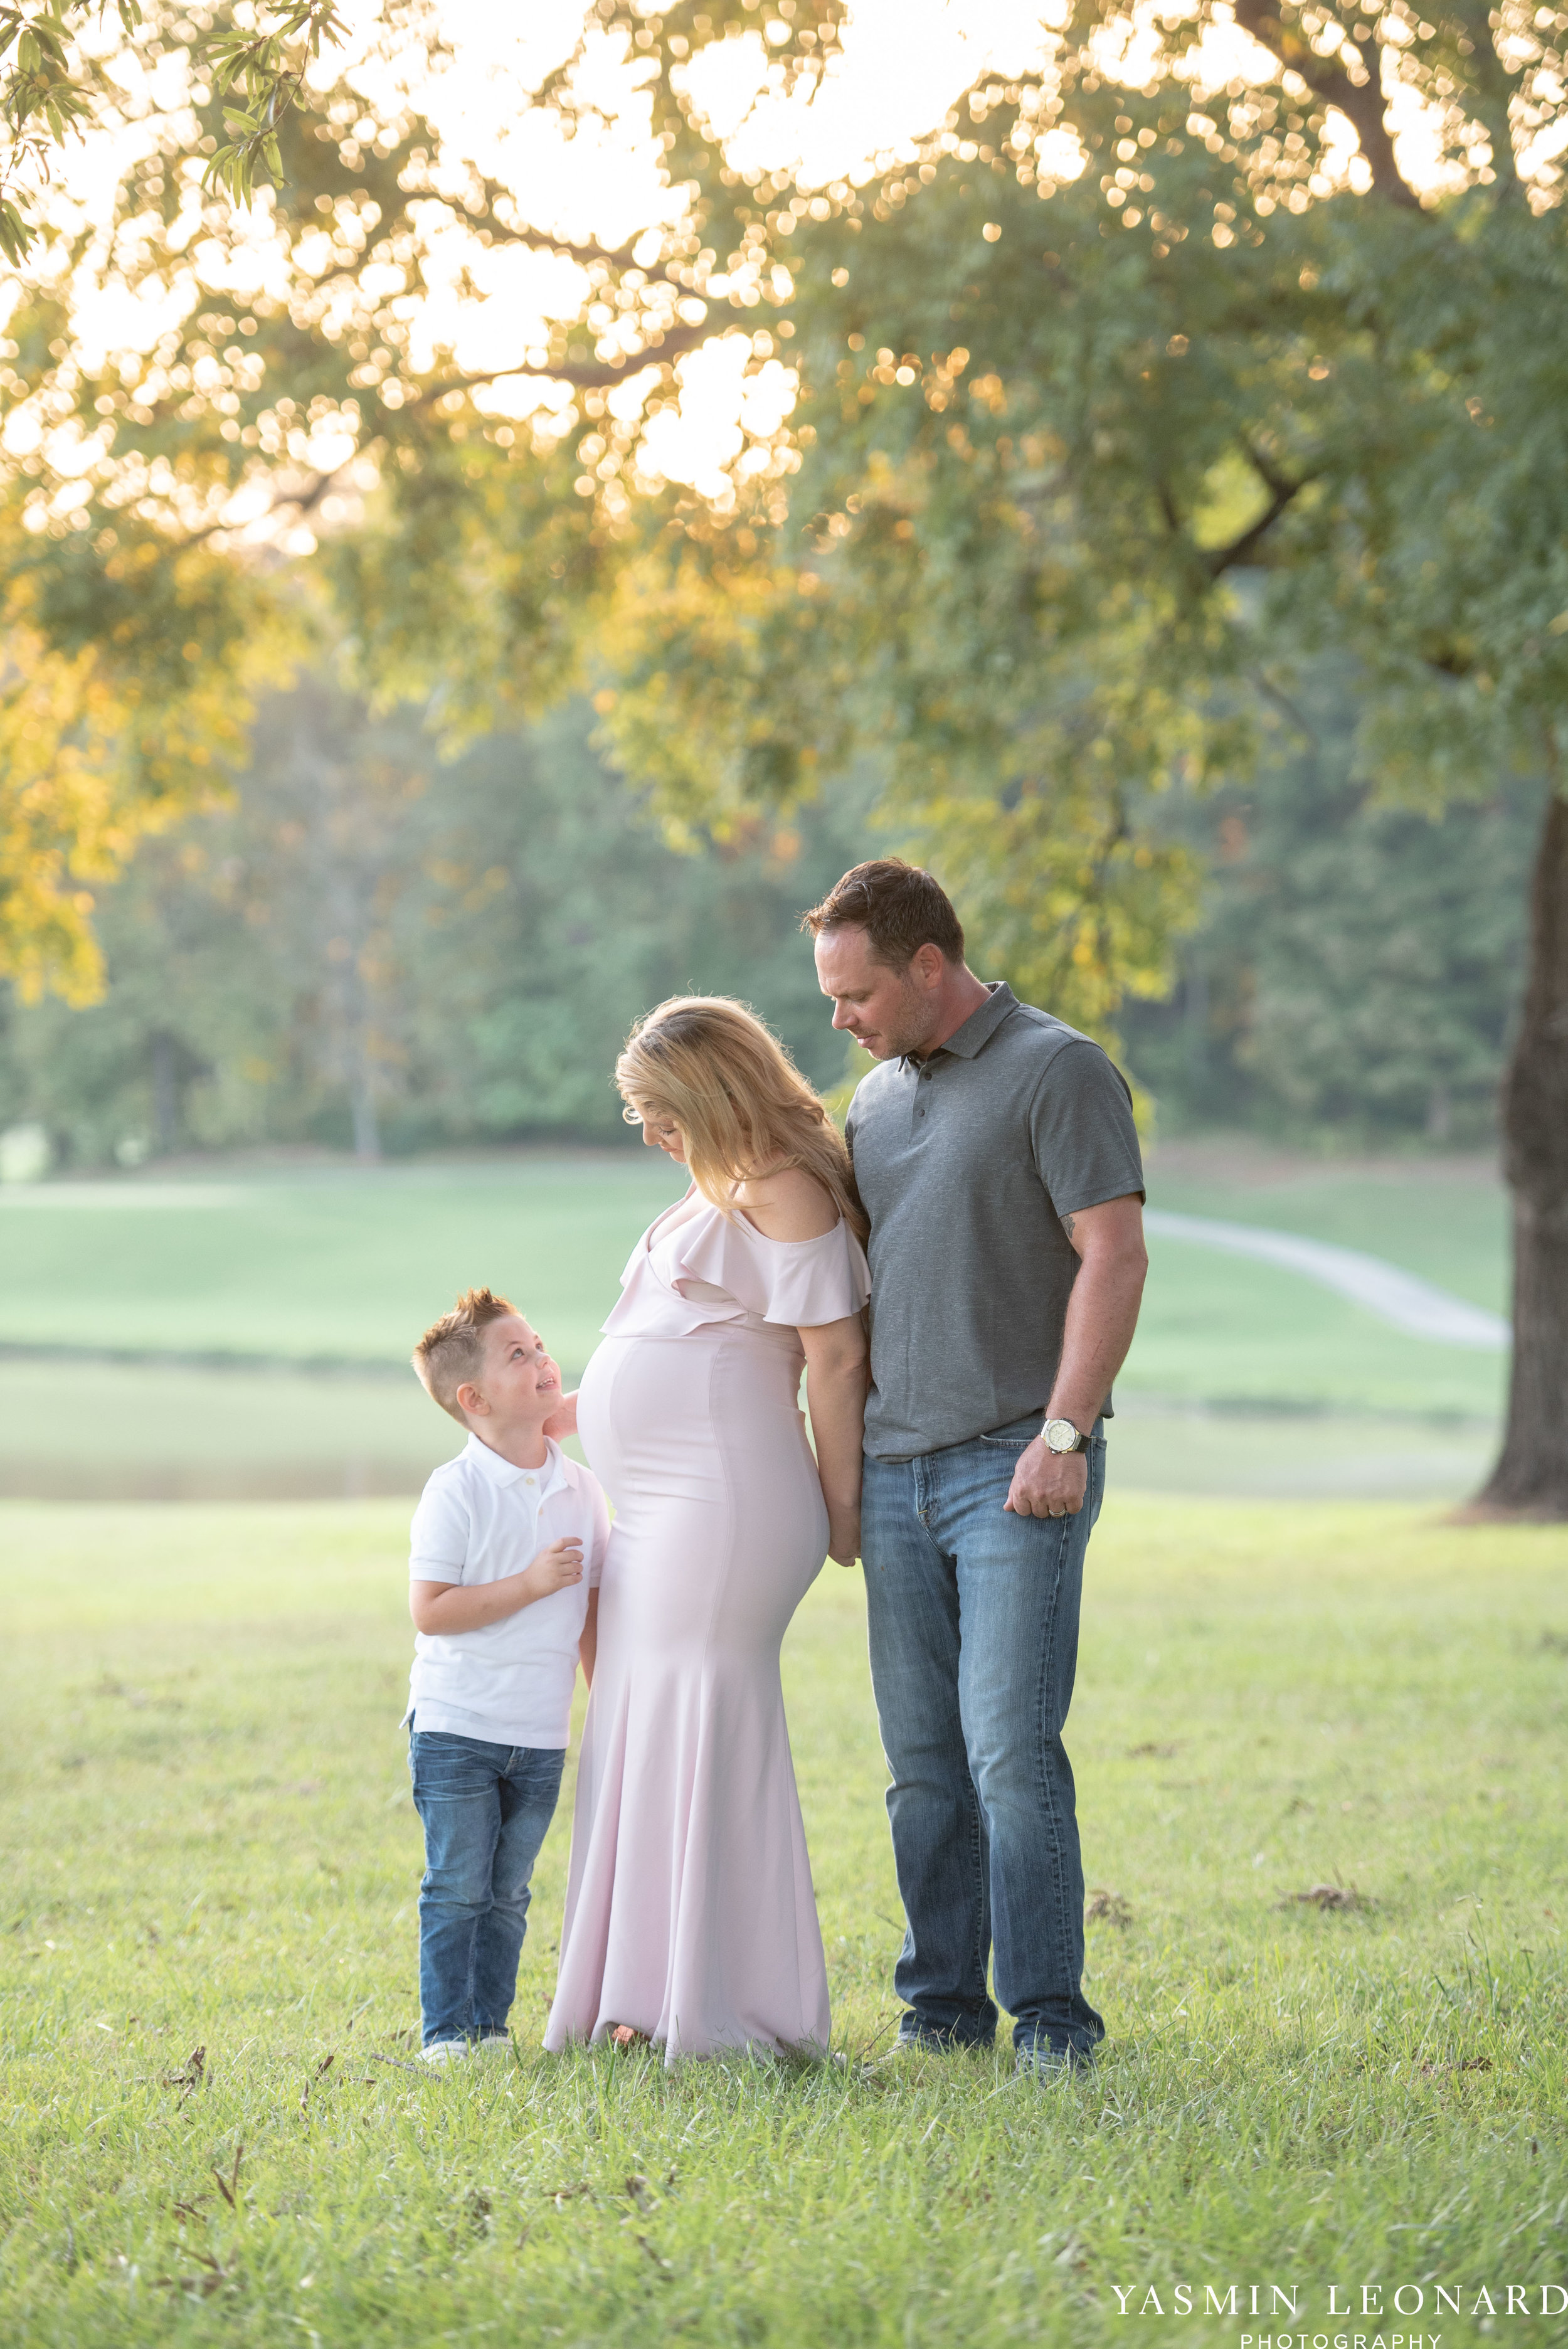 Maternity Session - High Point Maternity Session - NC Family Photographer - NC Photographer - High Point Photographer - Maternity Ideas - Yasmin Leonard Photography-1.jpg